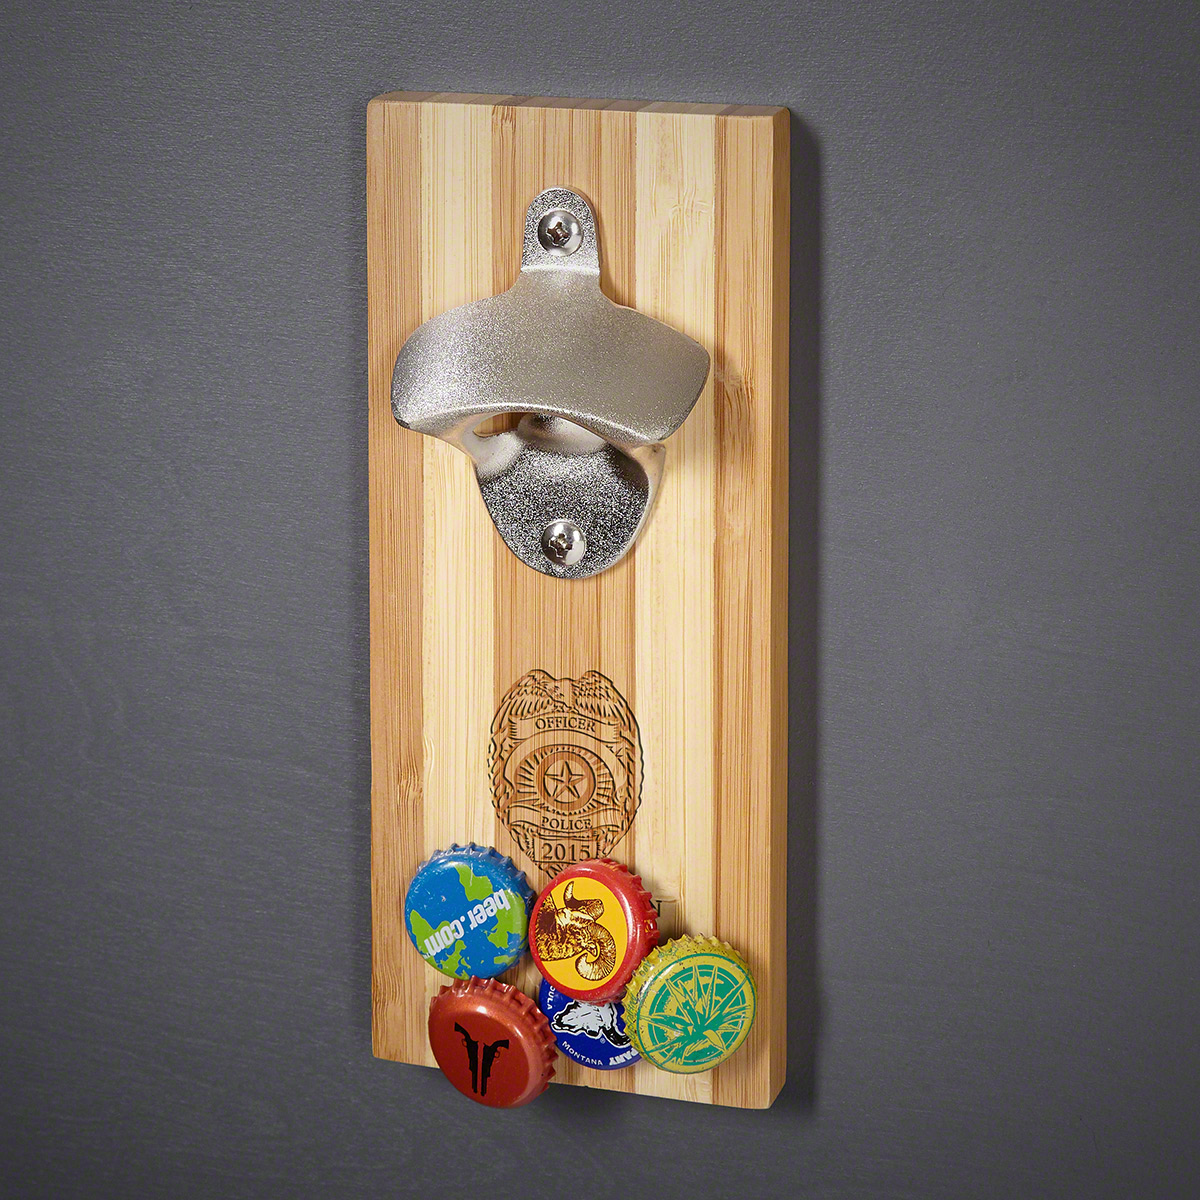 Wall Mounted Wine Openers Police Badge Custom Magnetic Wall Mount Bottle Opener